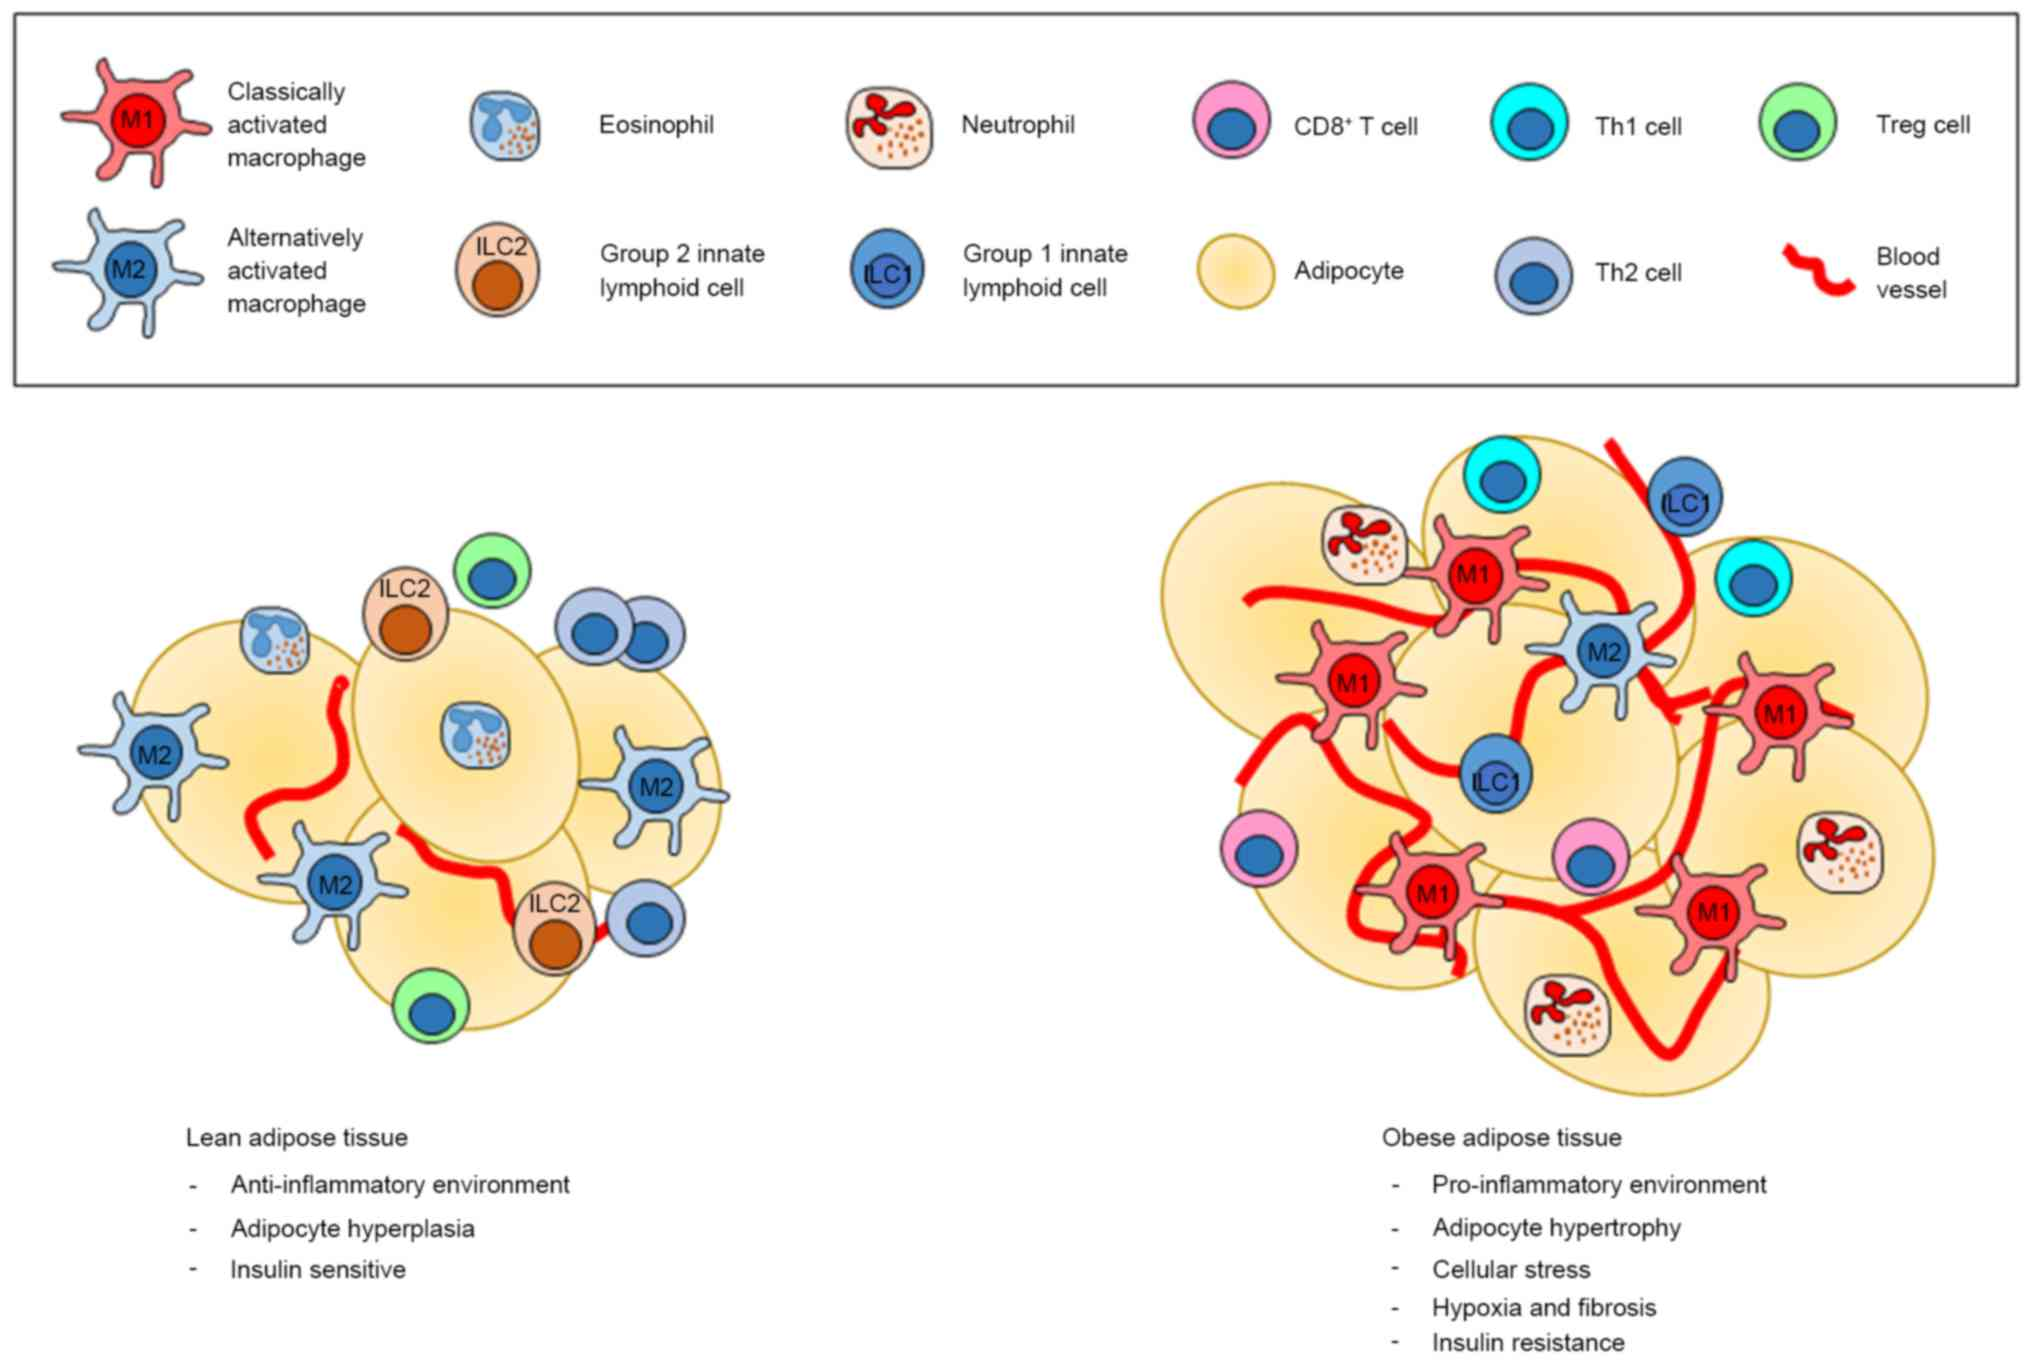 Role Of Innate Lymphoid Cells In Obesity And Metabolic Disease